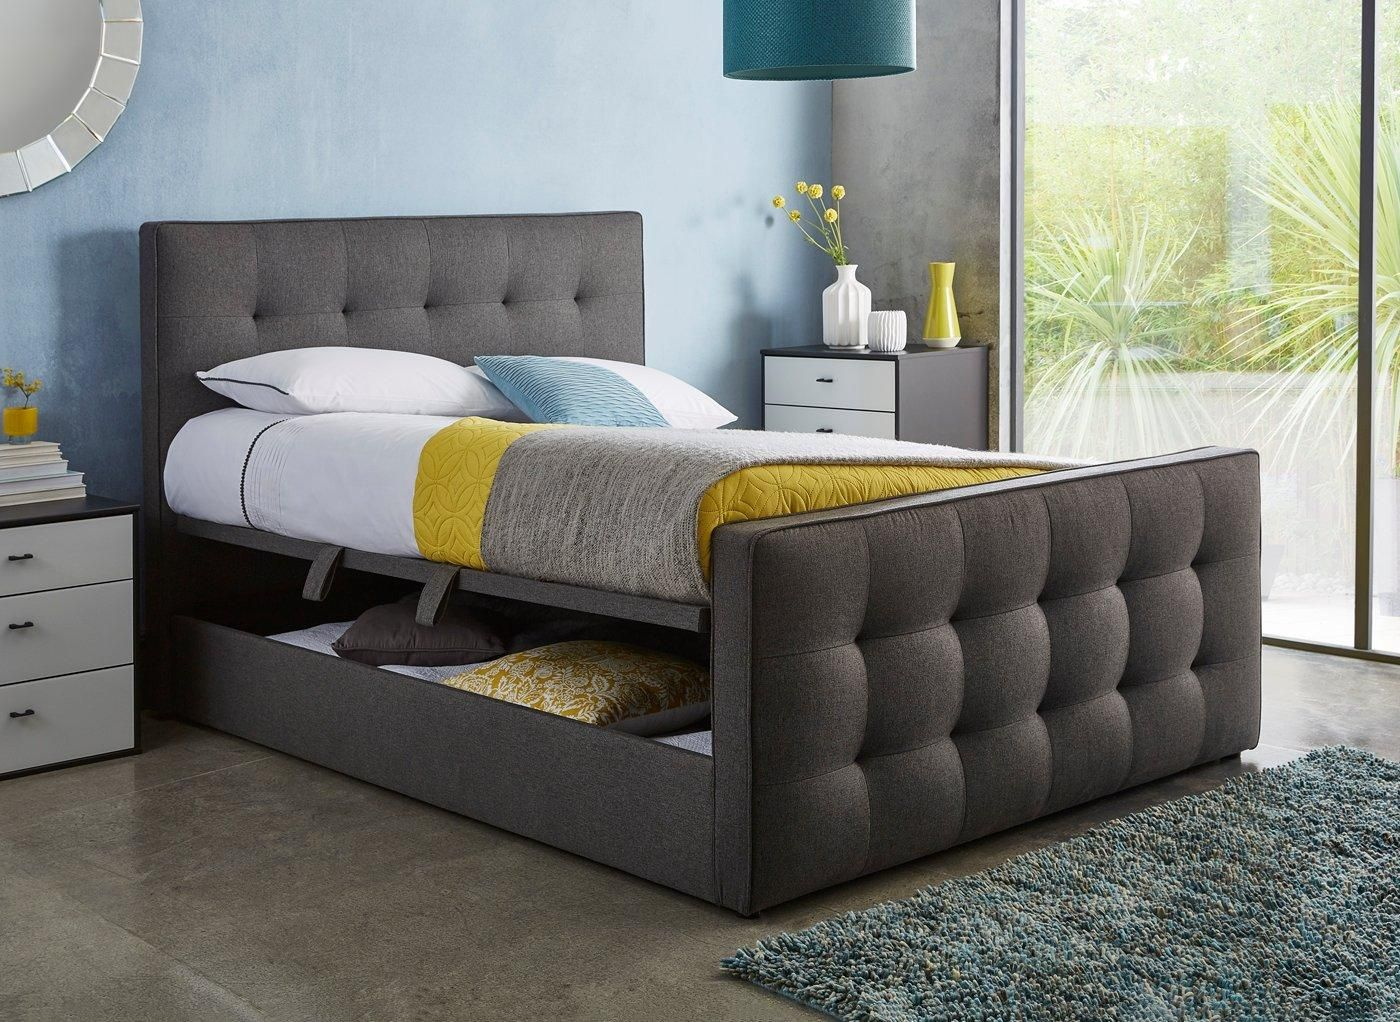 Cavill Slate Grey Fabric Ottoman Bed Frame 5 0 King In 2020 Bed